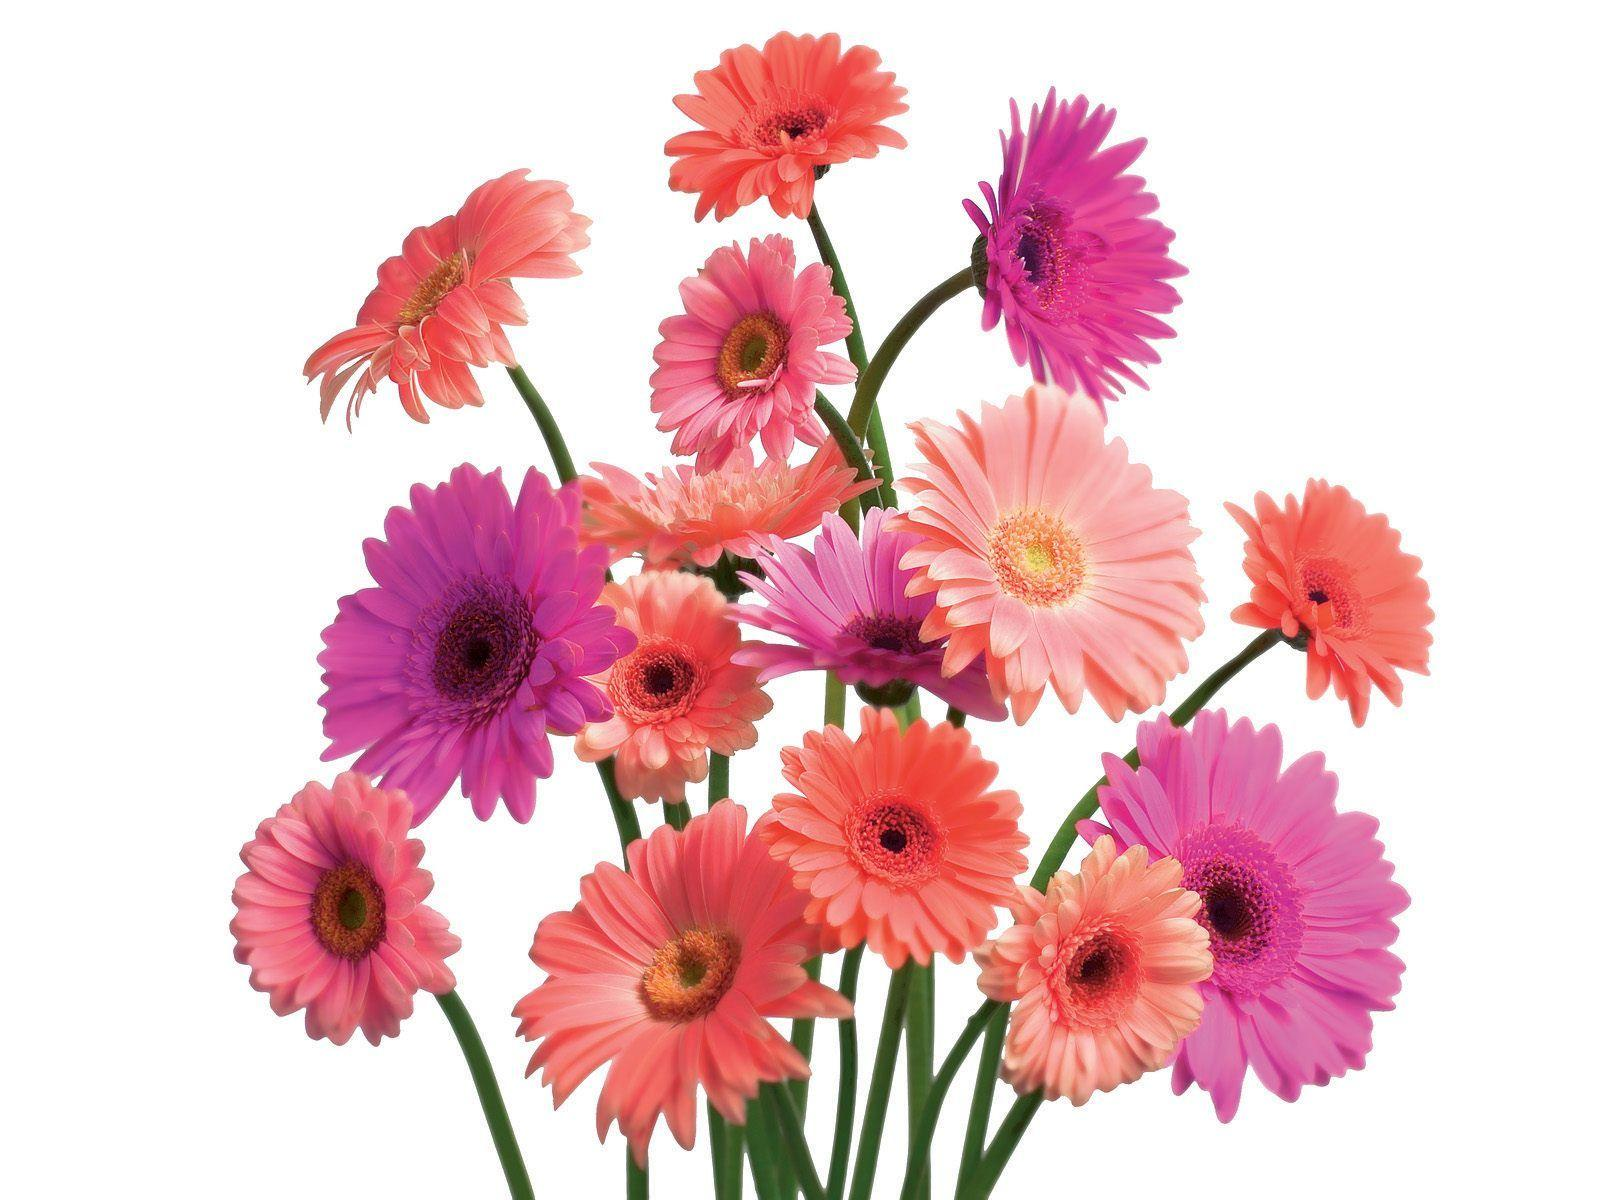 Gerbera daisies wallpapers wallpaper cave for Bouquet de fleurs gerbera